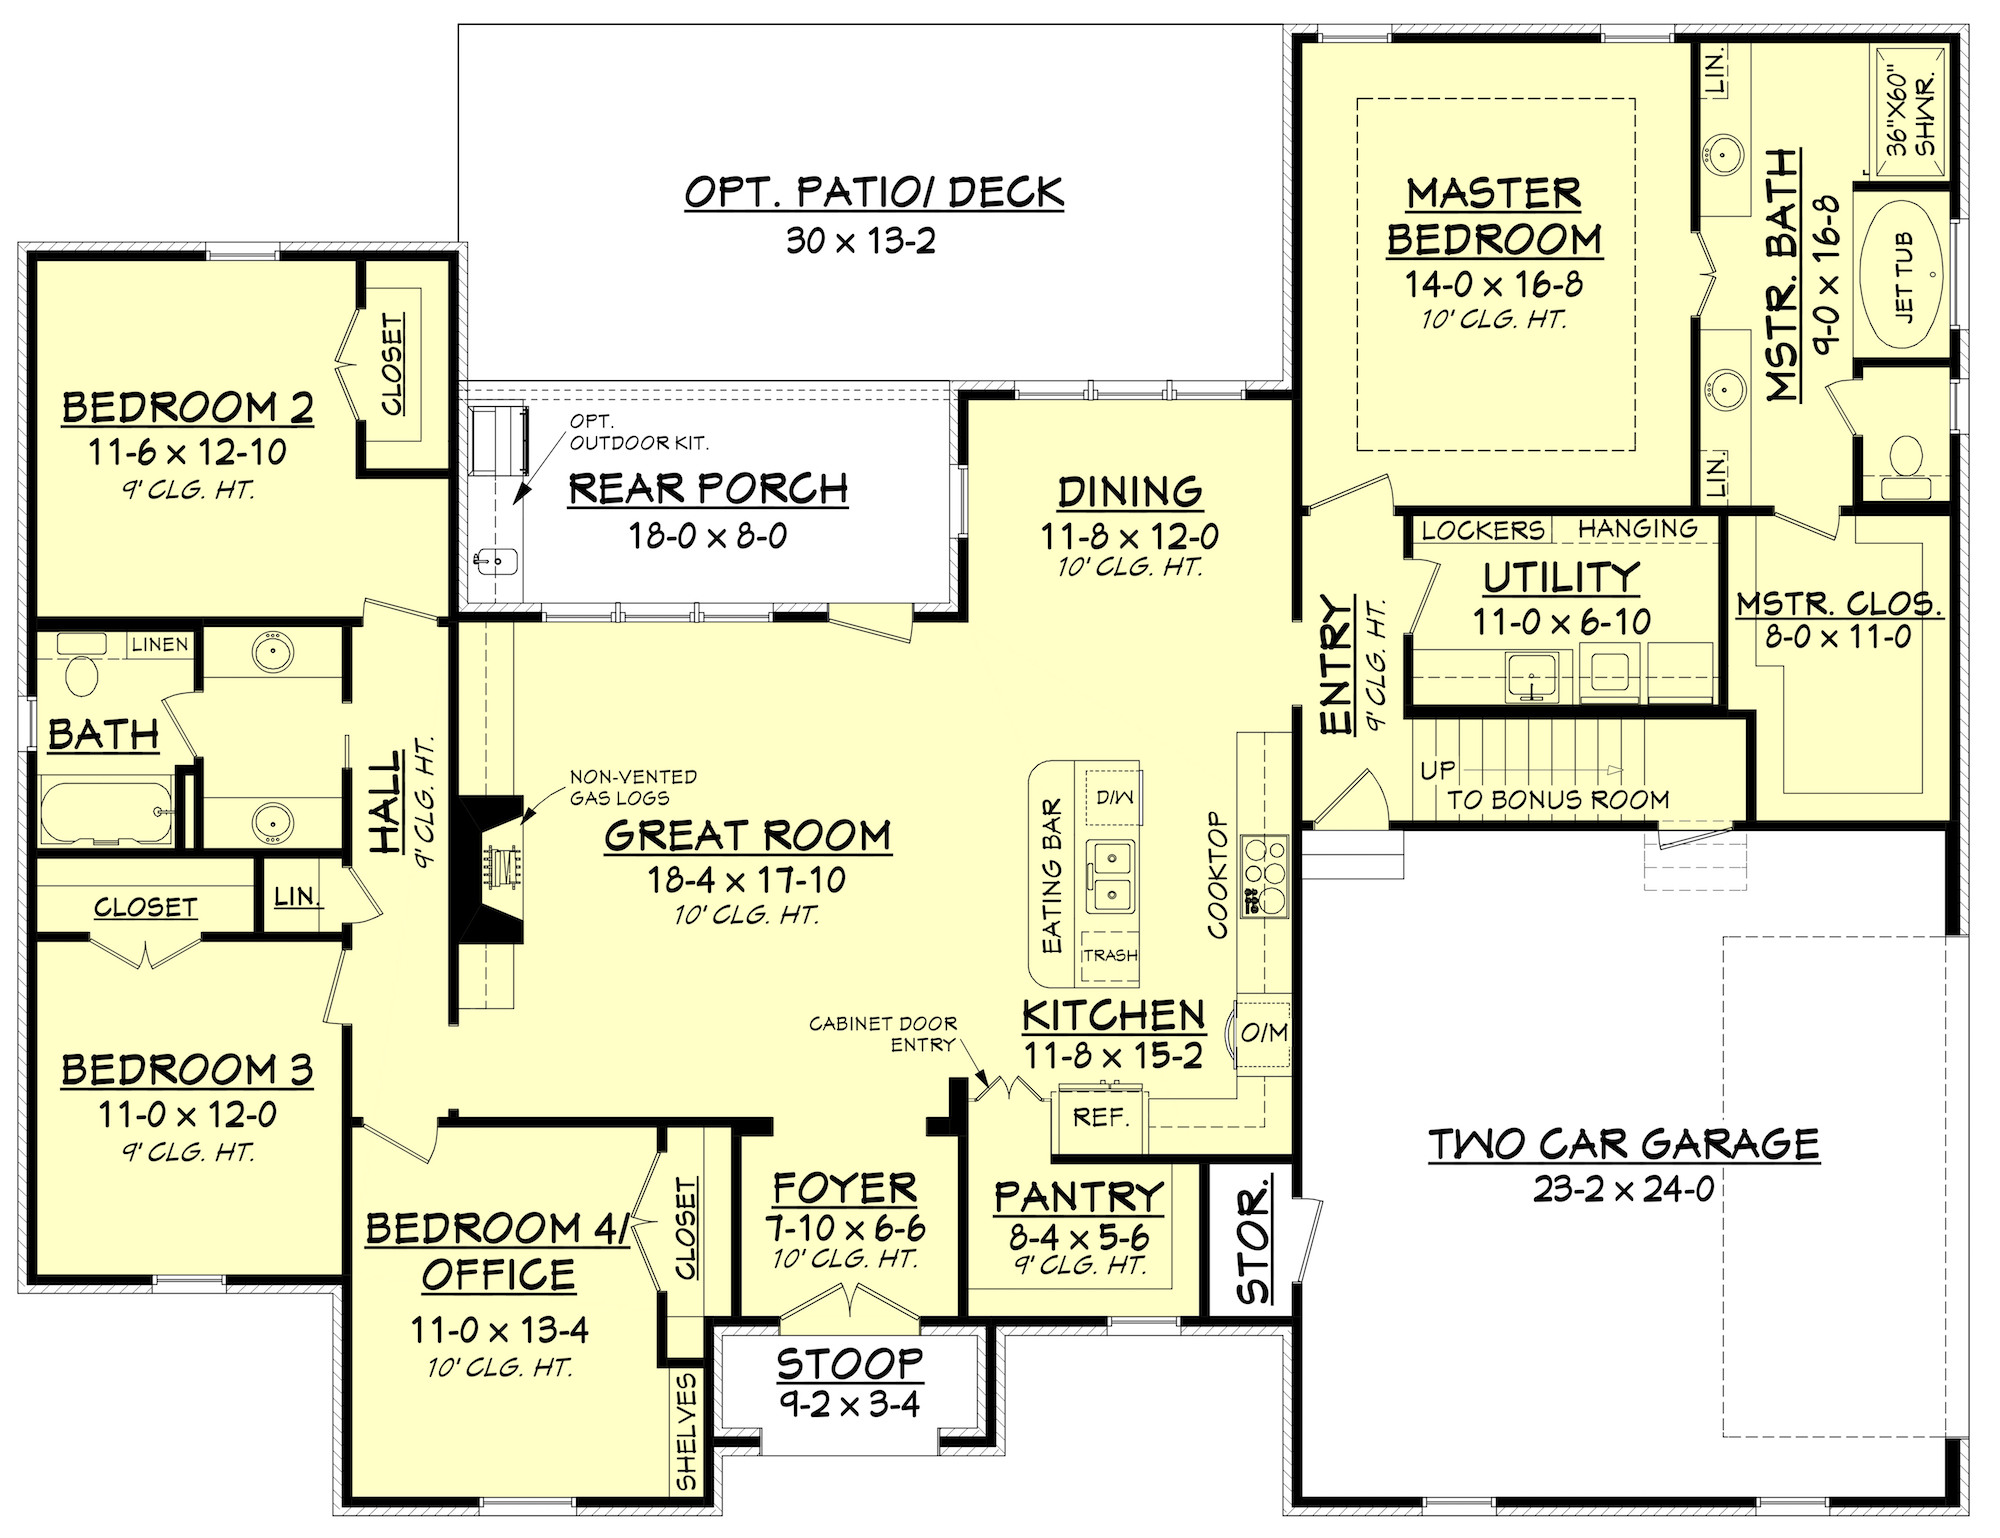 Acadian house plan 142 1154 4 bedrm 2210 sq ft home plan House plans